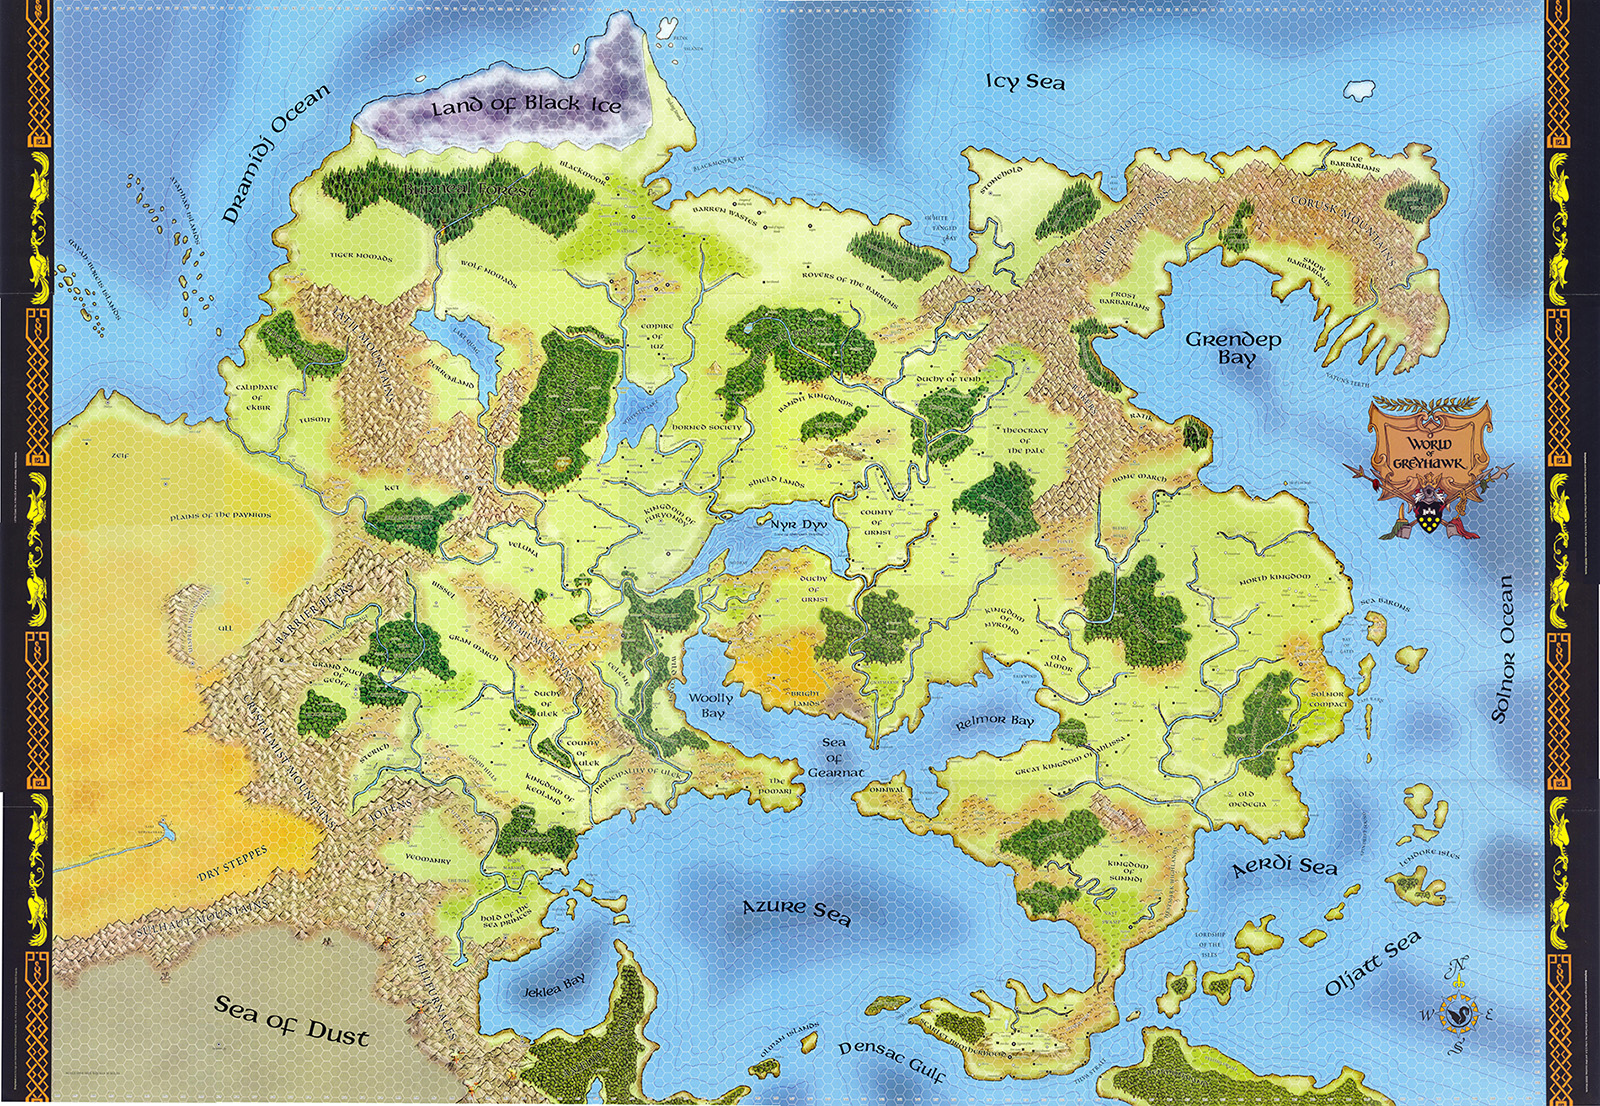 Map of the World of Greyhawk fantasy game setting.